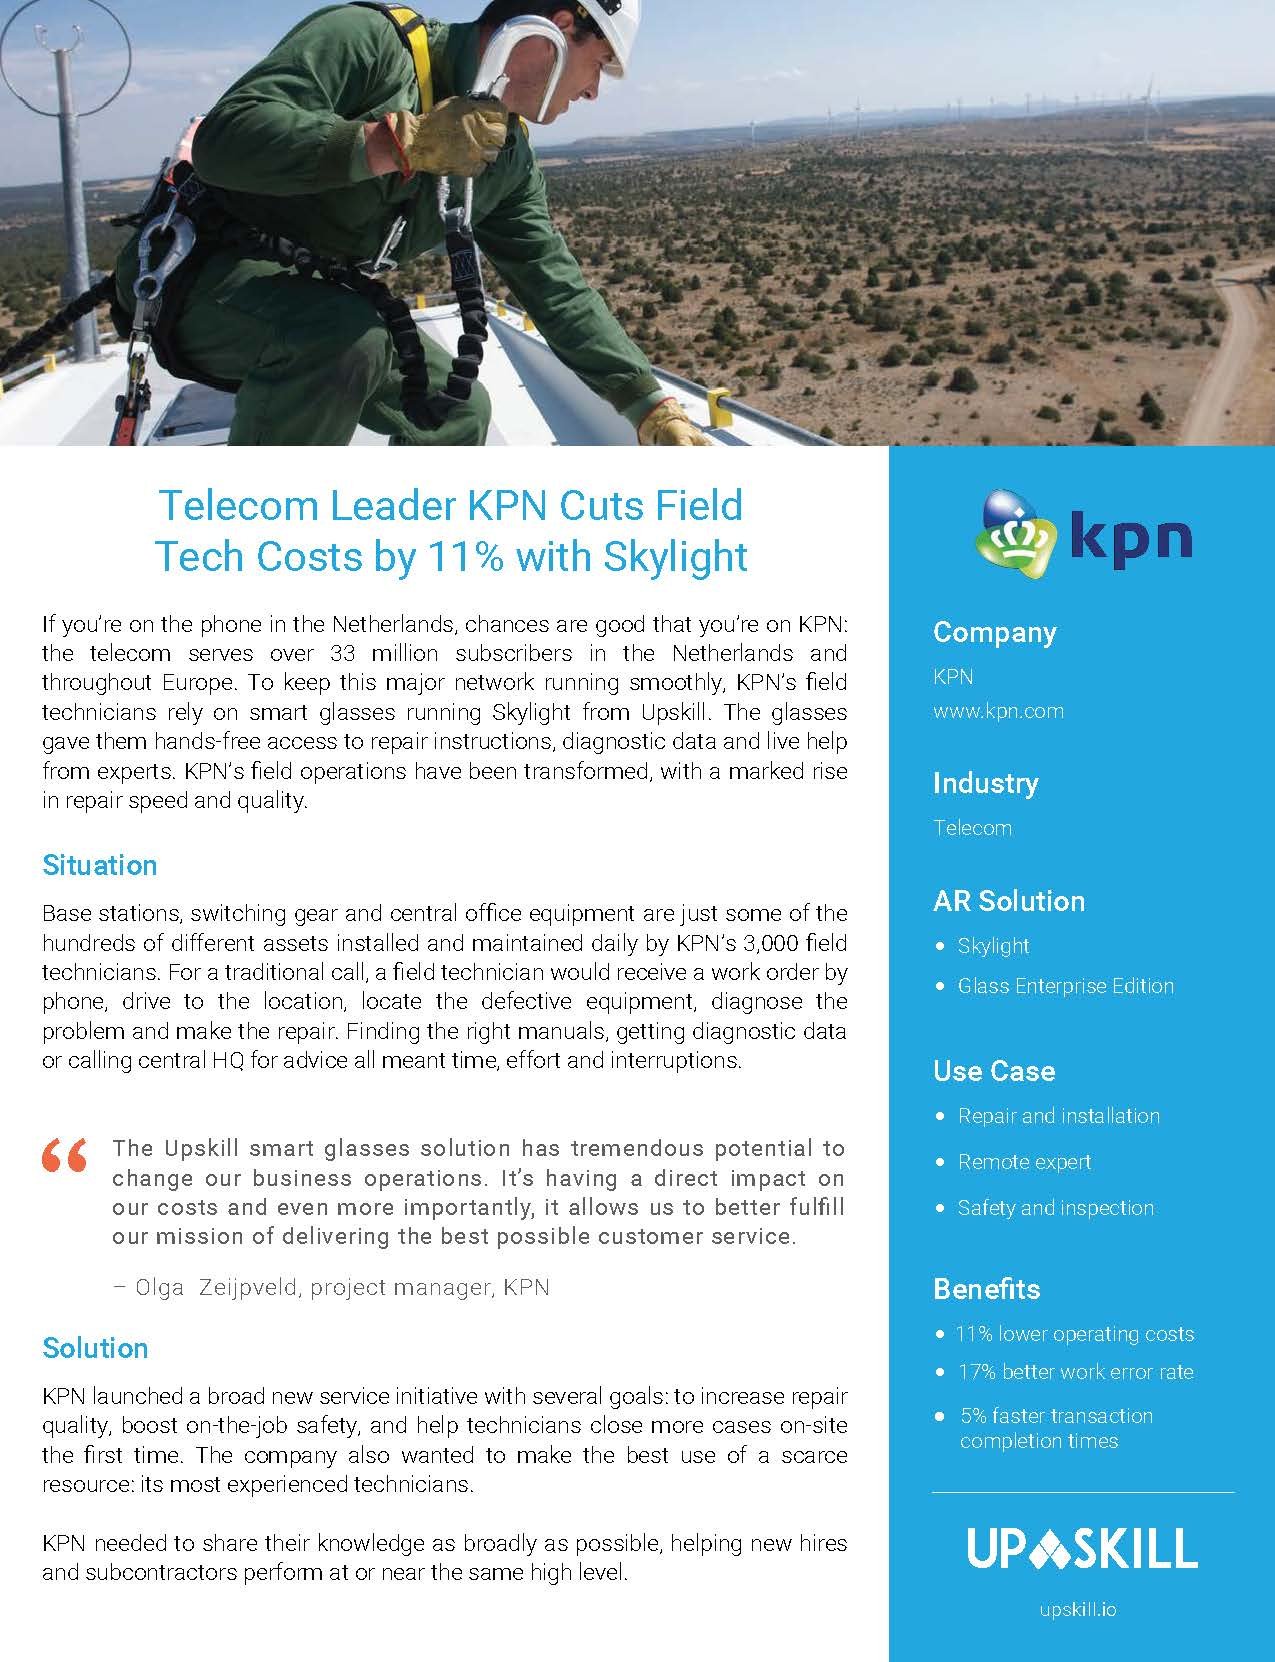 Augmented reality for telecom companies case study: Telecom Leader KPN Cuts Field Tech Costs by 11 percent with Skylight AR Platform